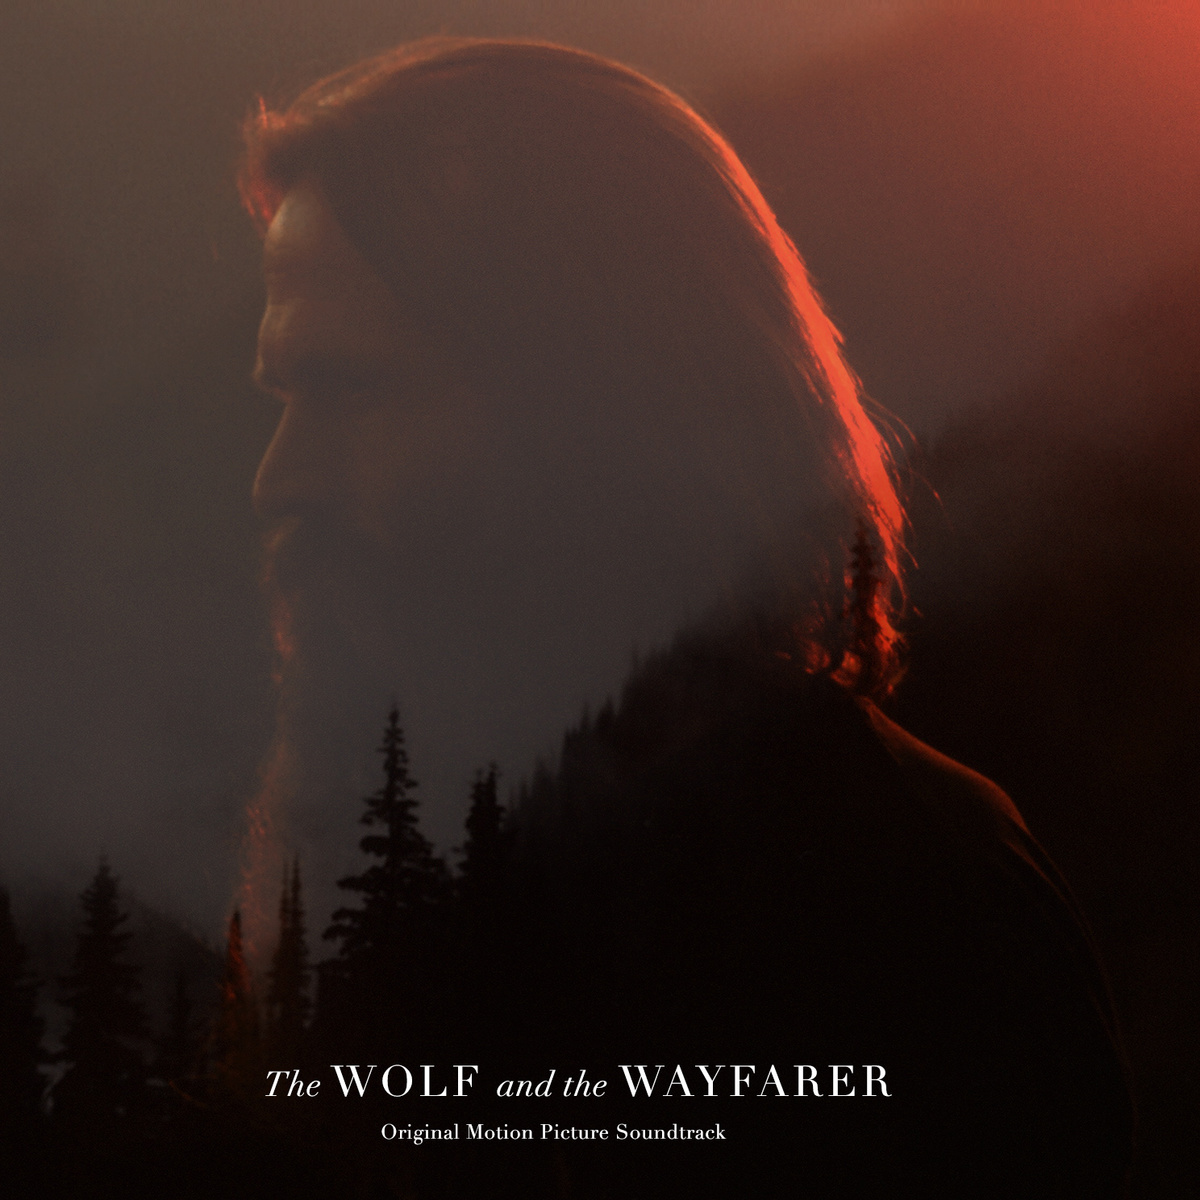 The Wolf and the Wayfarer